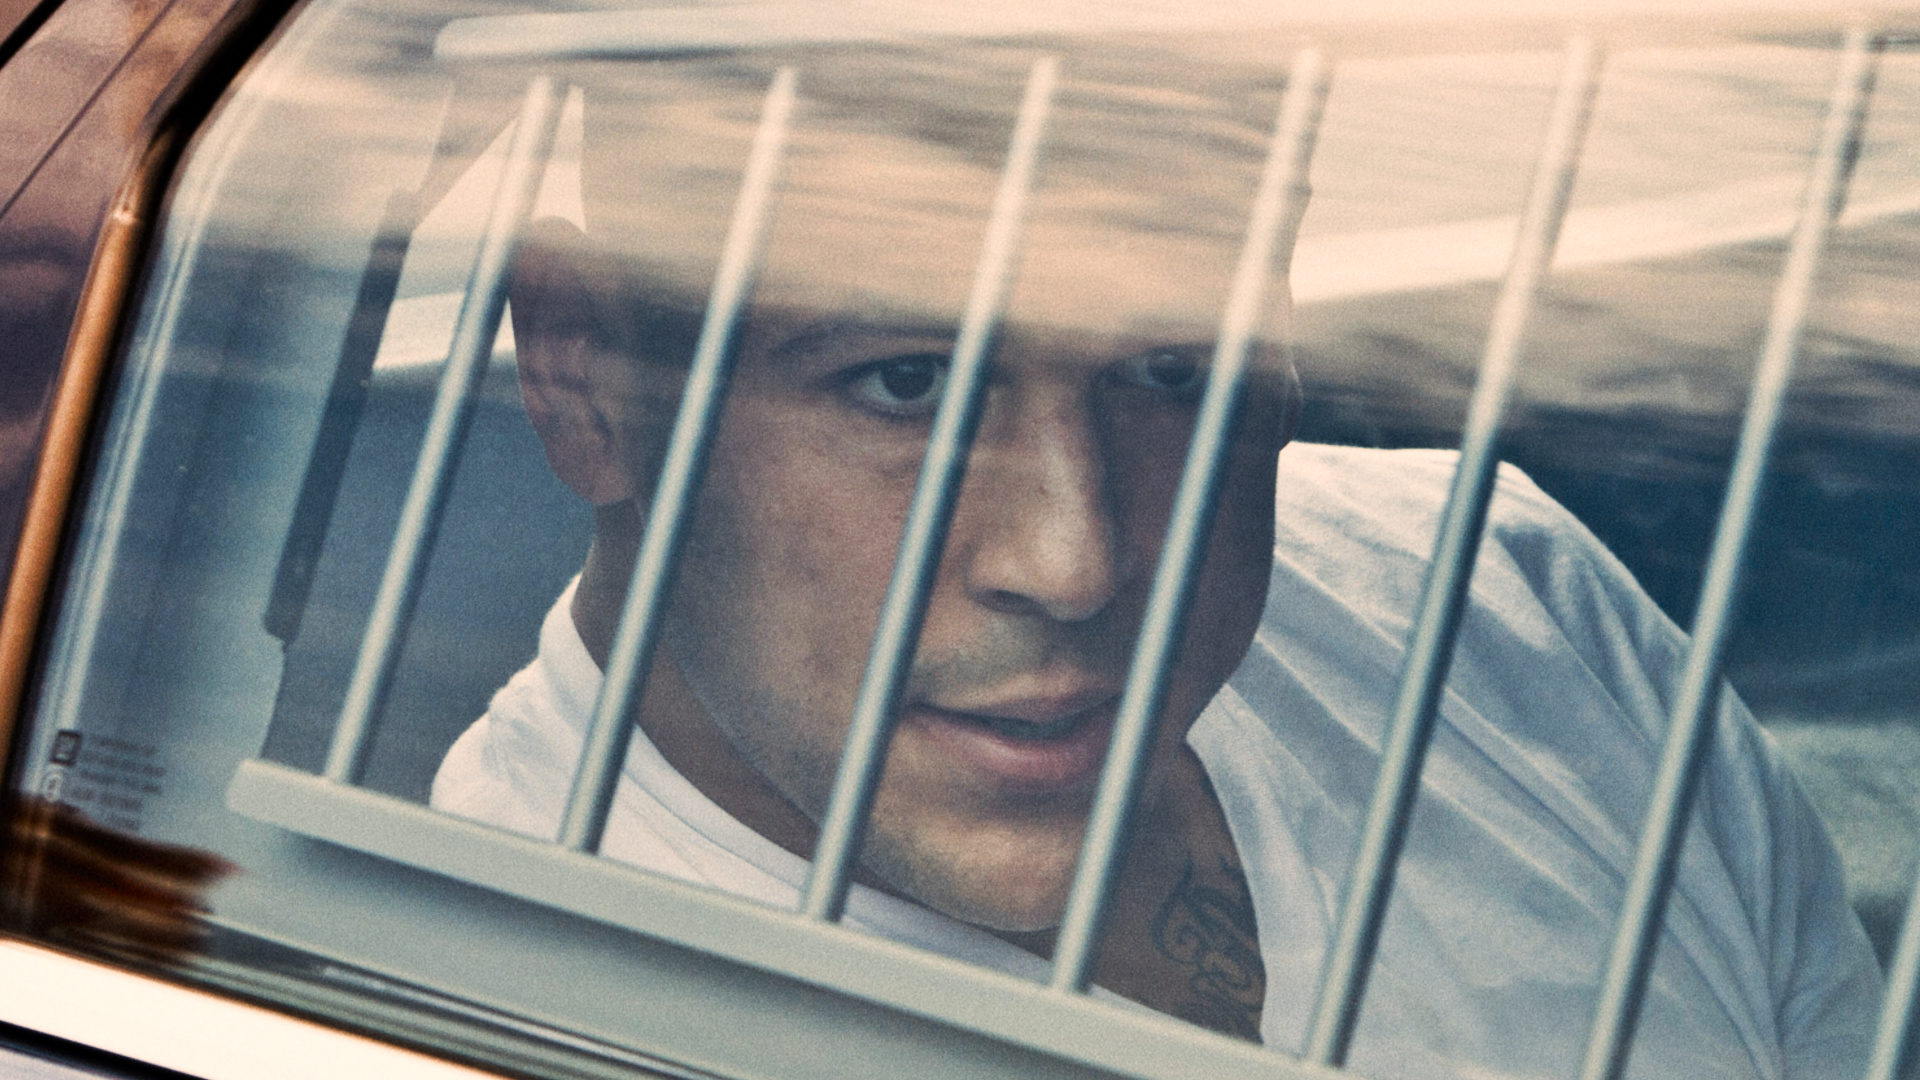 [Documentary Review] KILLER INSIDE: THE MIND OF AARON HERNANDEZ